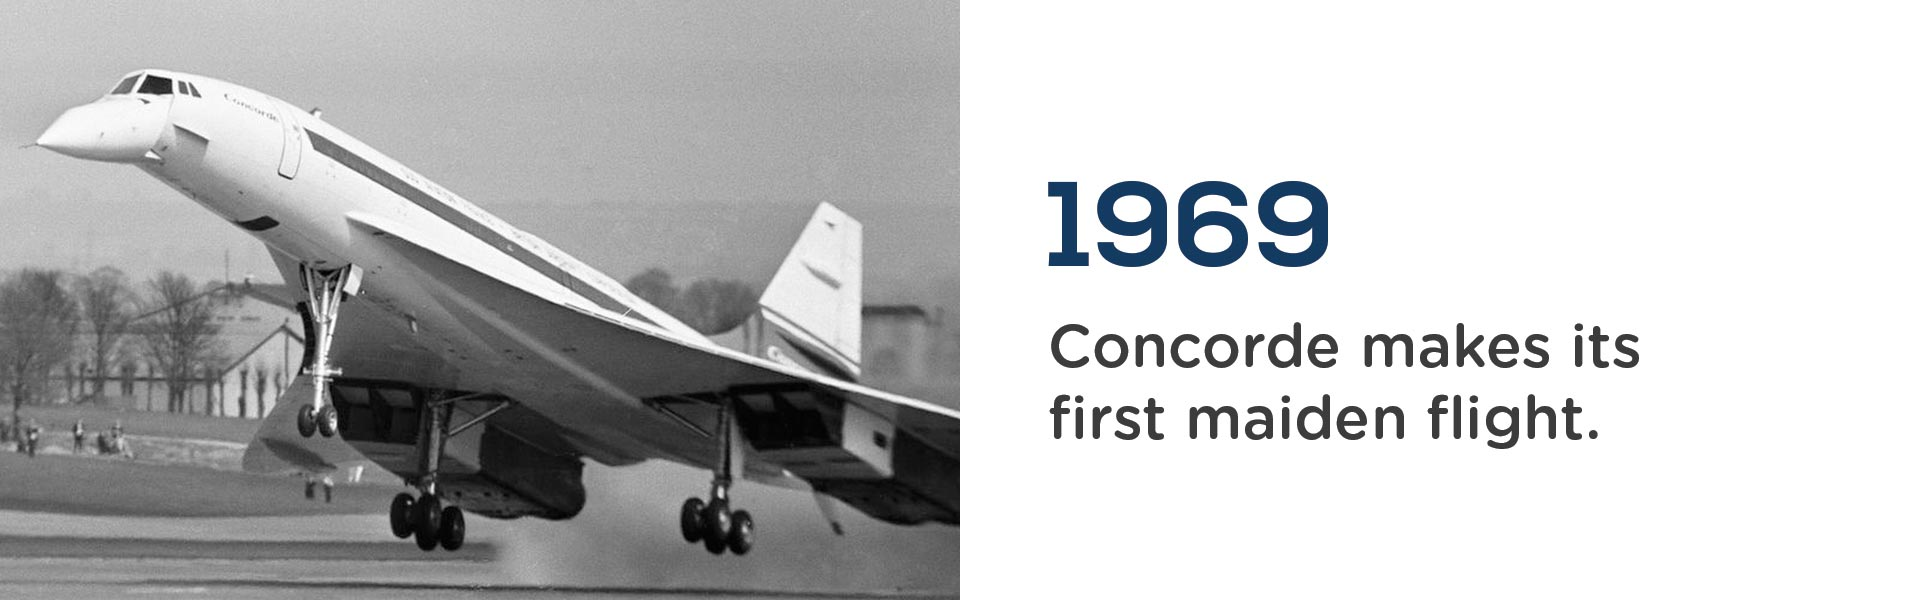 Concorde made its maiden flight in 1969.Wrigley Claydon Solicitors, Trusted for 200 years